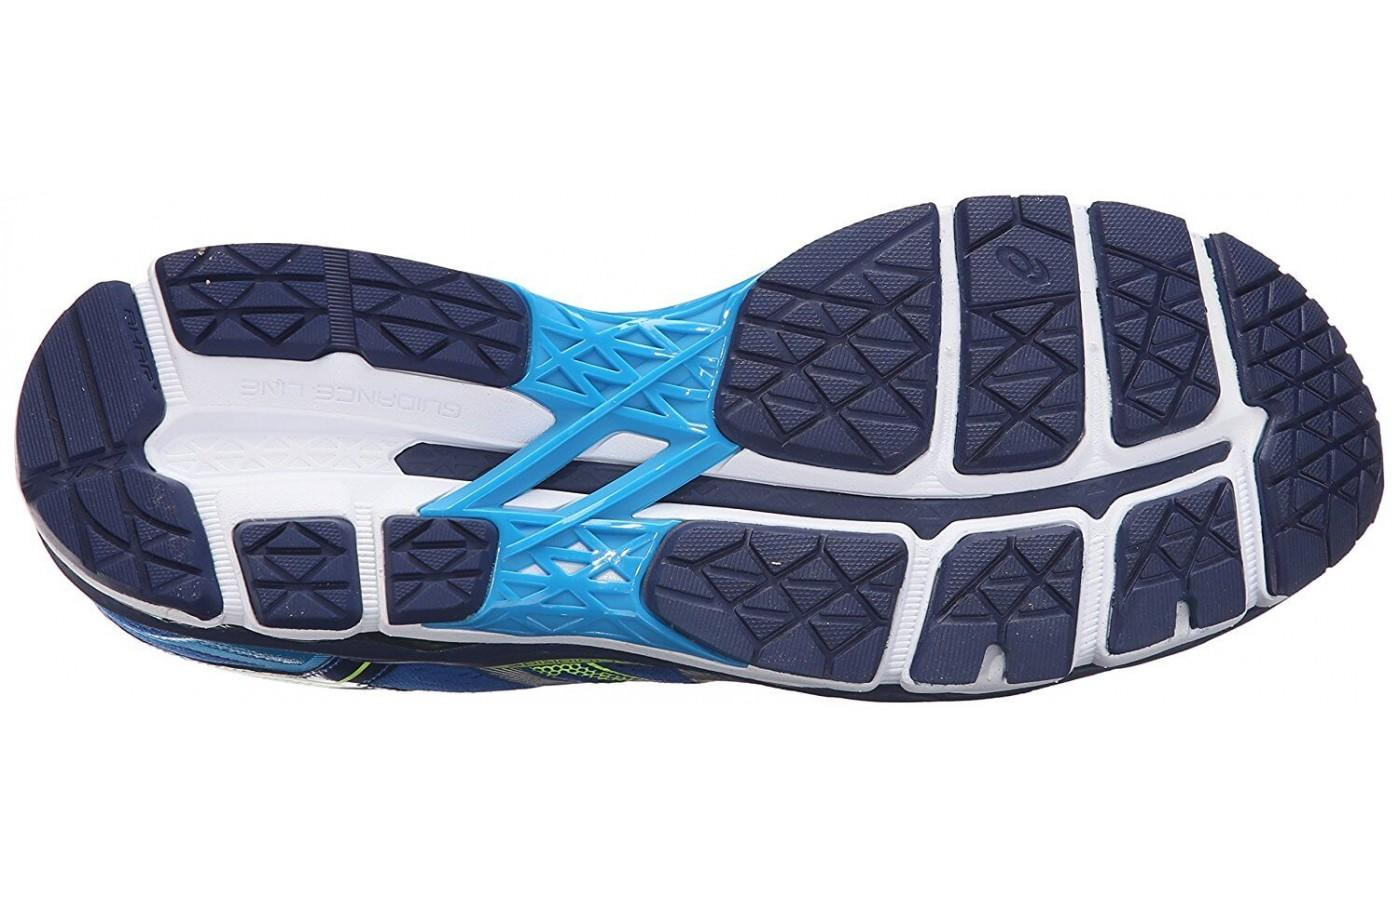 Looking at the bottom outsole of the ASICS GEL-Surveyor 5.